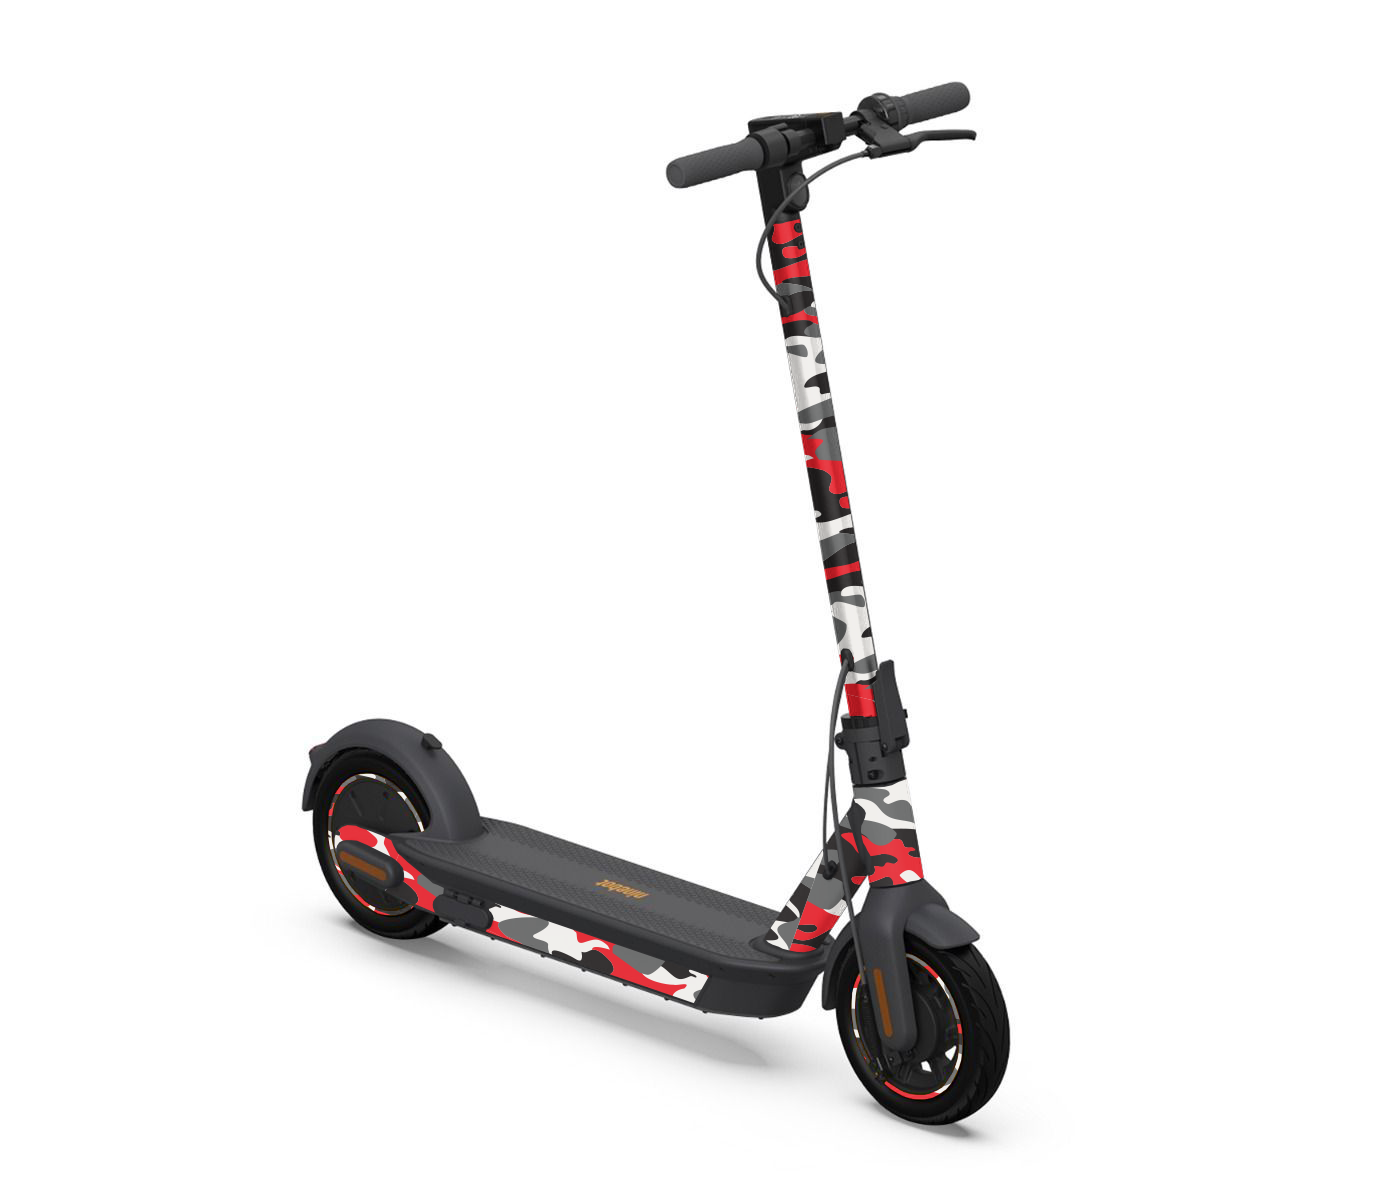 Segway Ninebot Max Electric Scooter Wrap